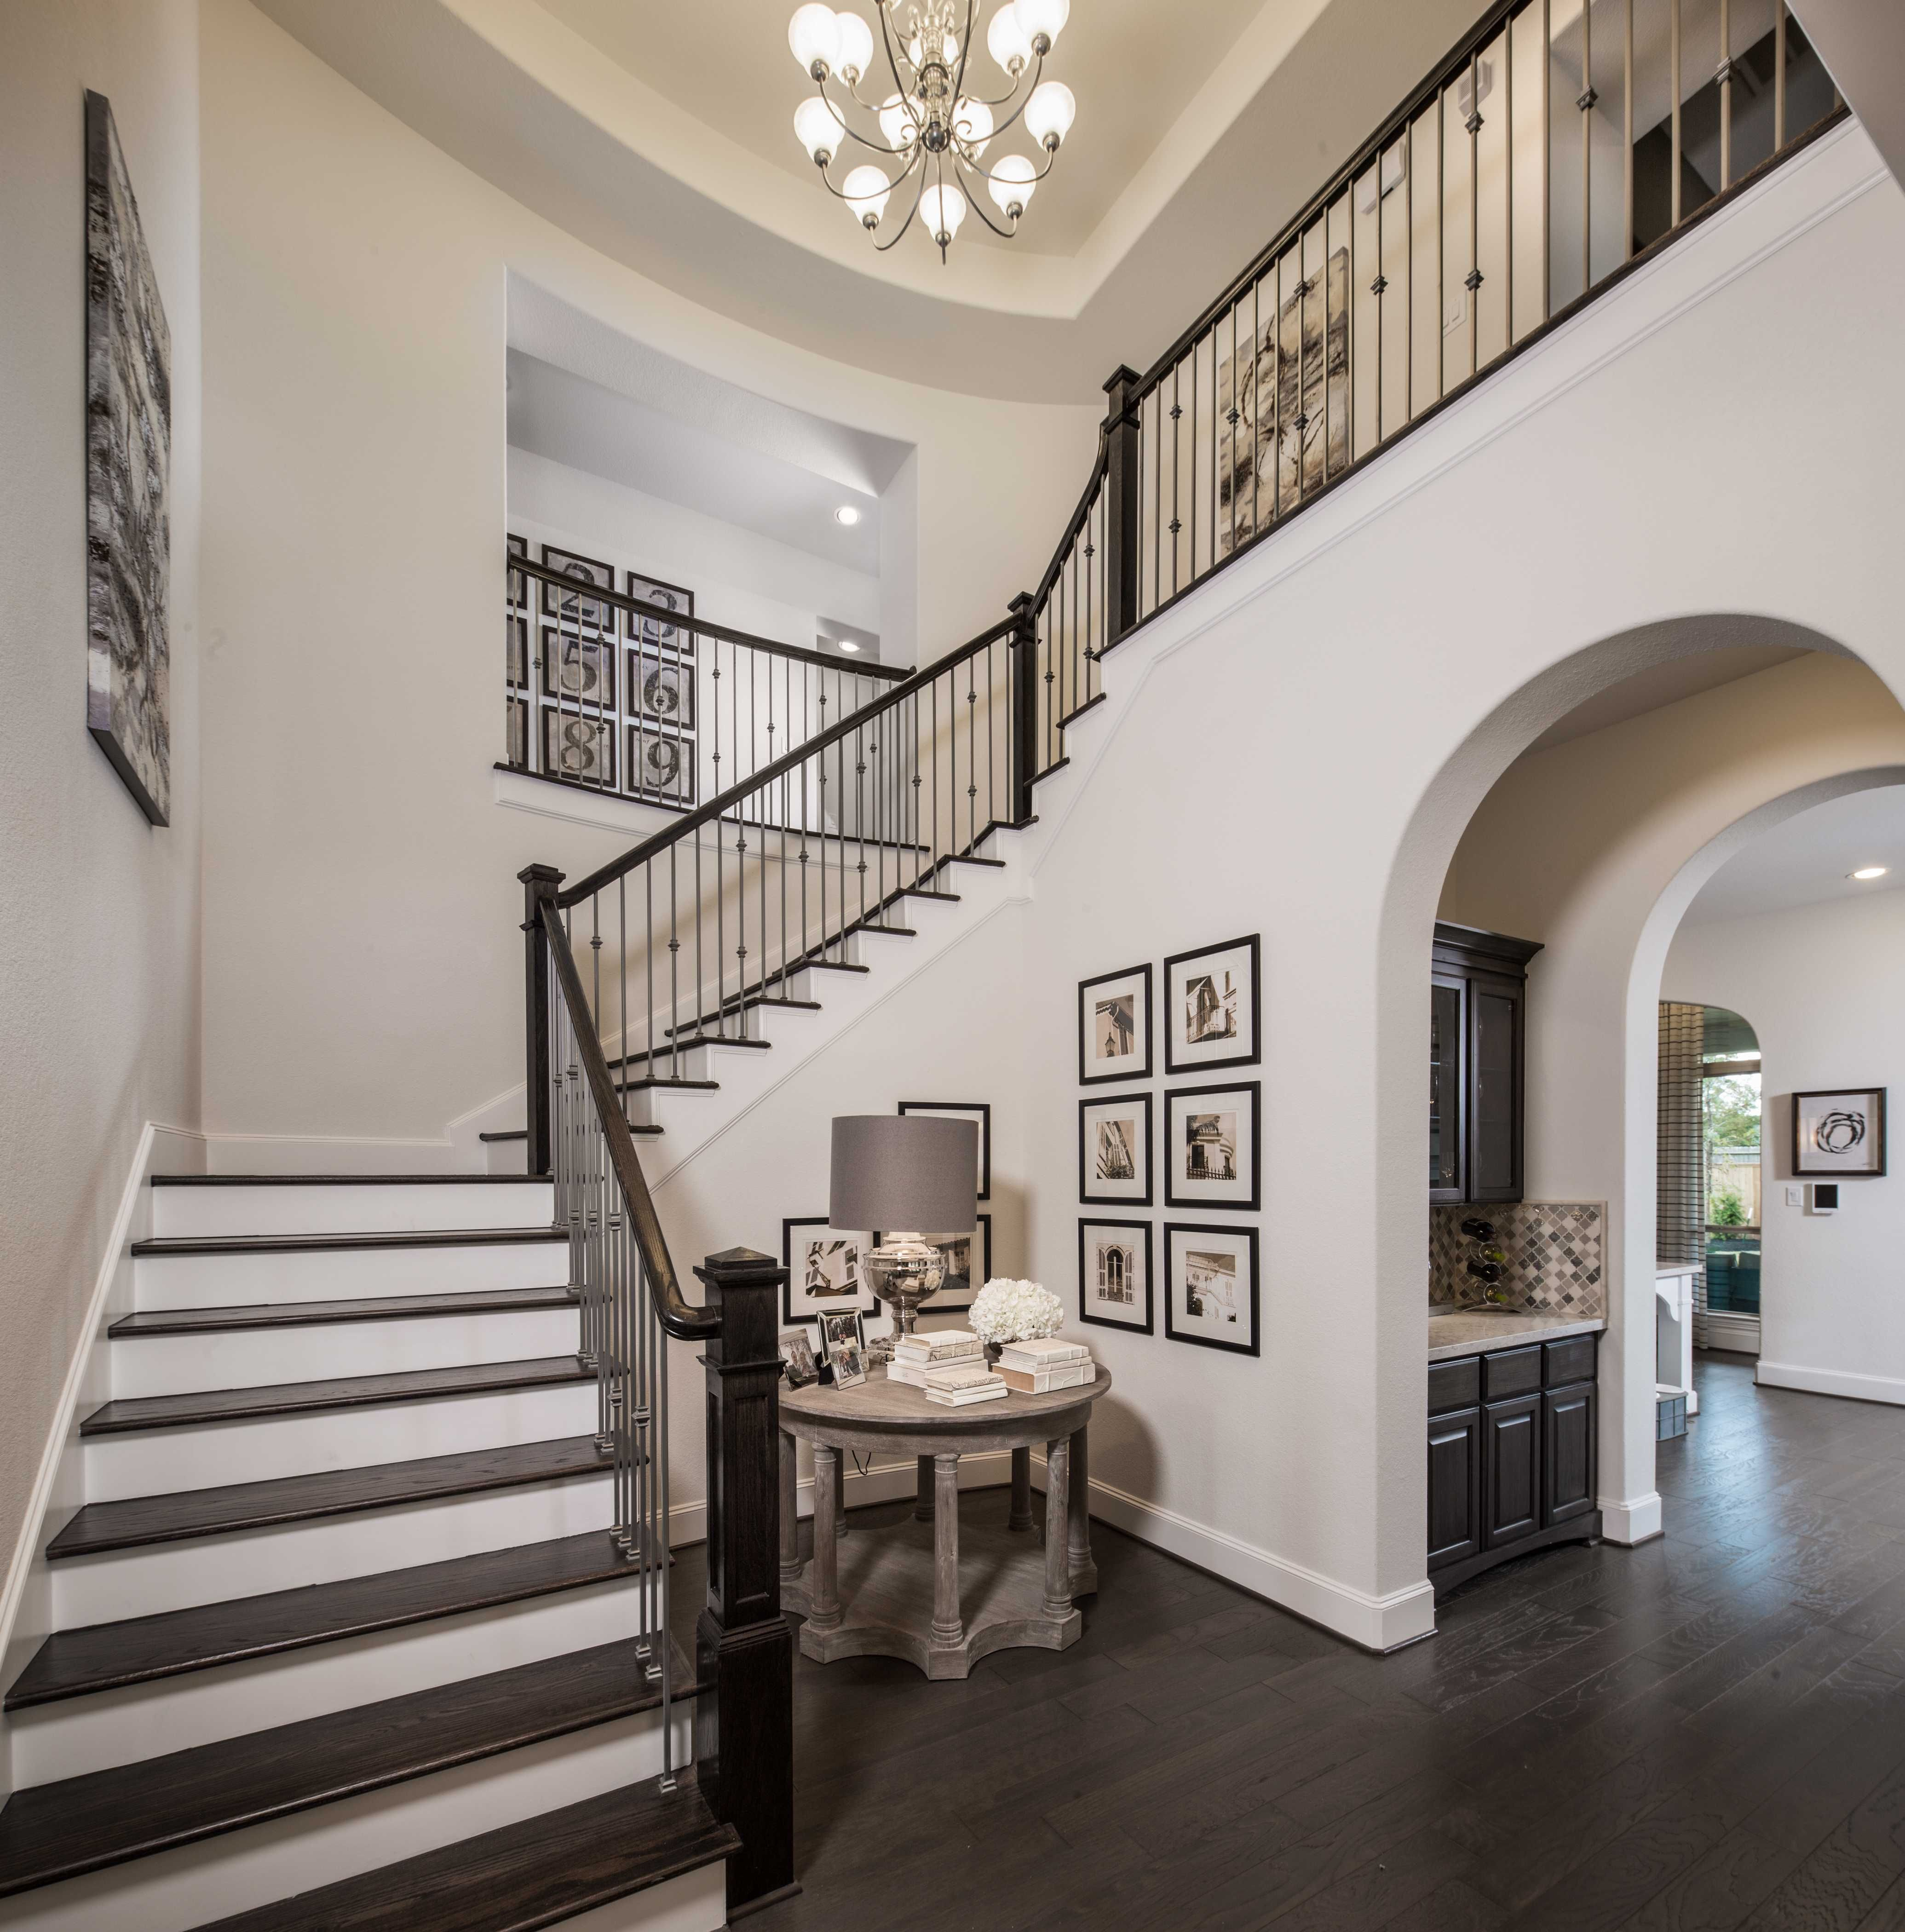 Model Homes Decorating: Highland Homes Plan 617 Model Home In Houston Texas